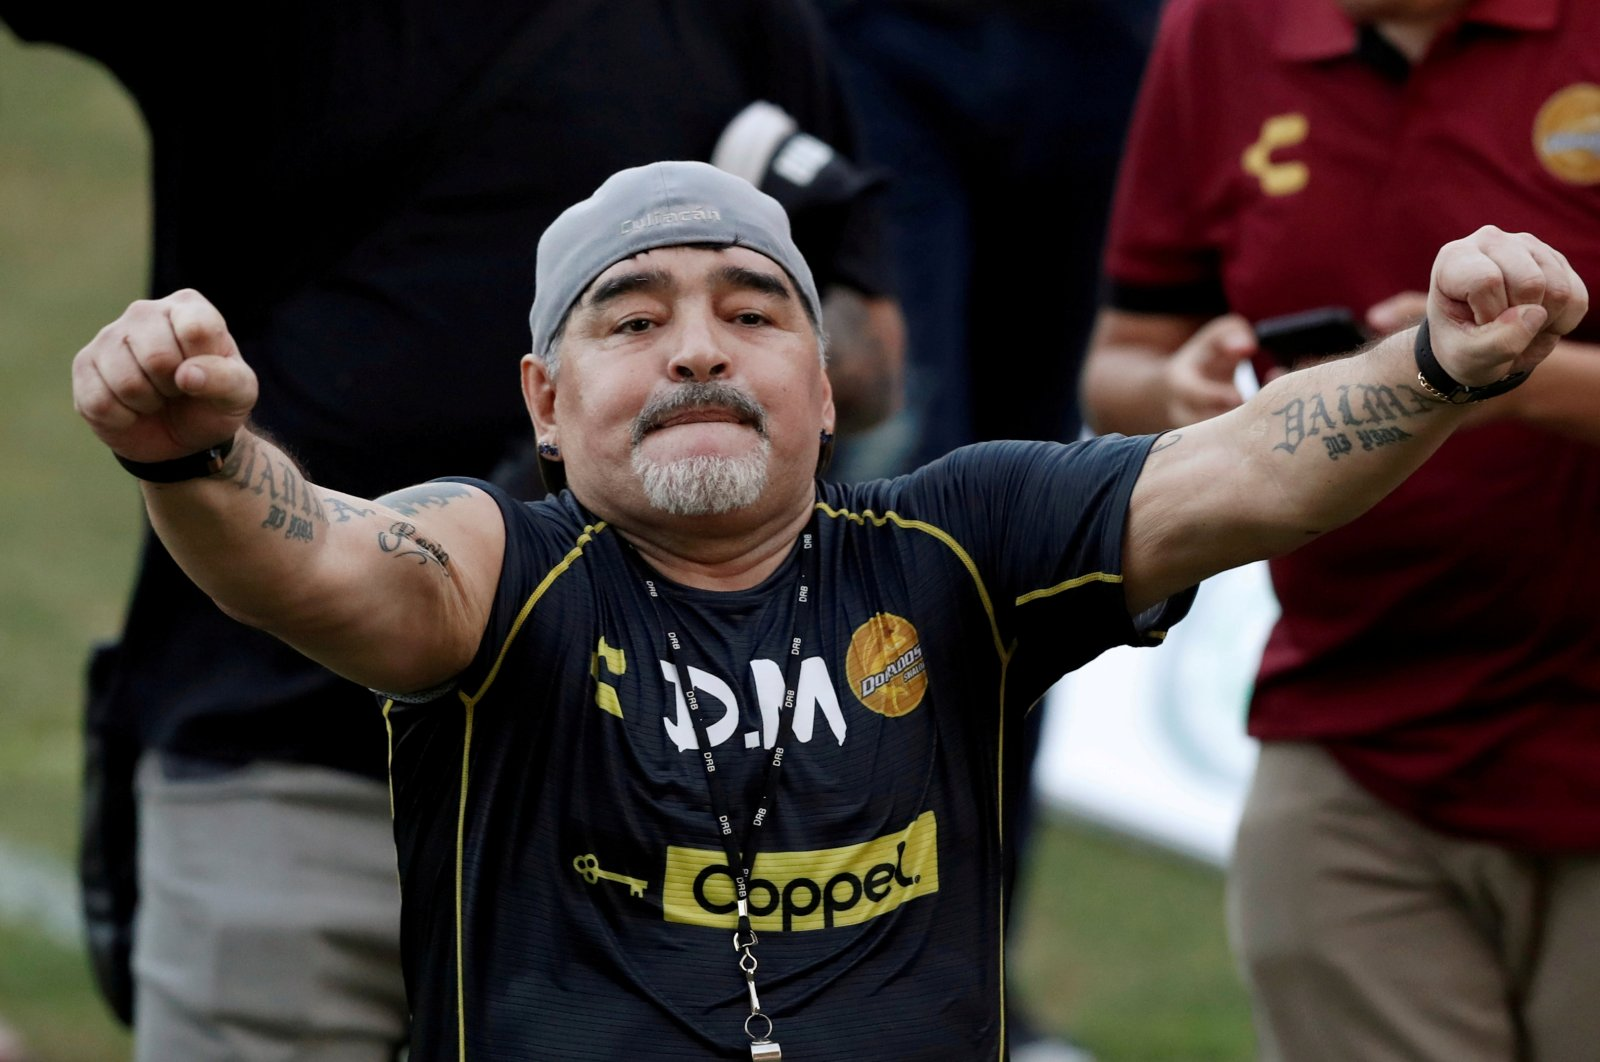 Diego Maradona reacts during his first training session as coach of Dorados football club, in Culiacan, Mexico, Sept. 10, 2018. (Reuters Photo)